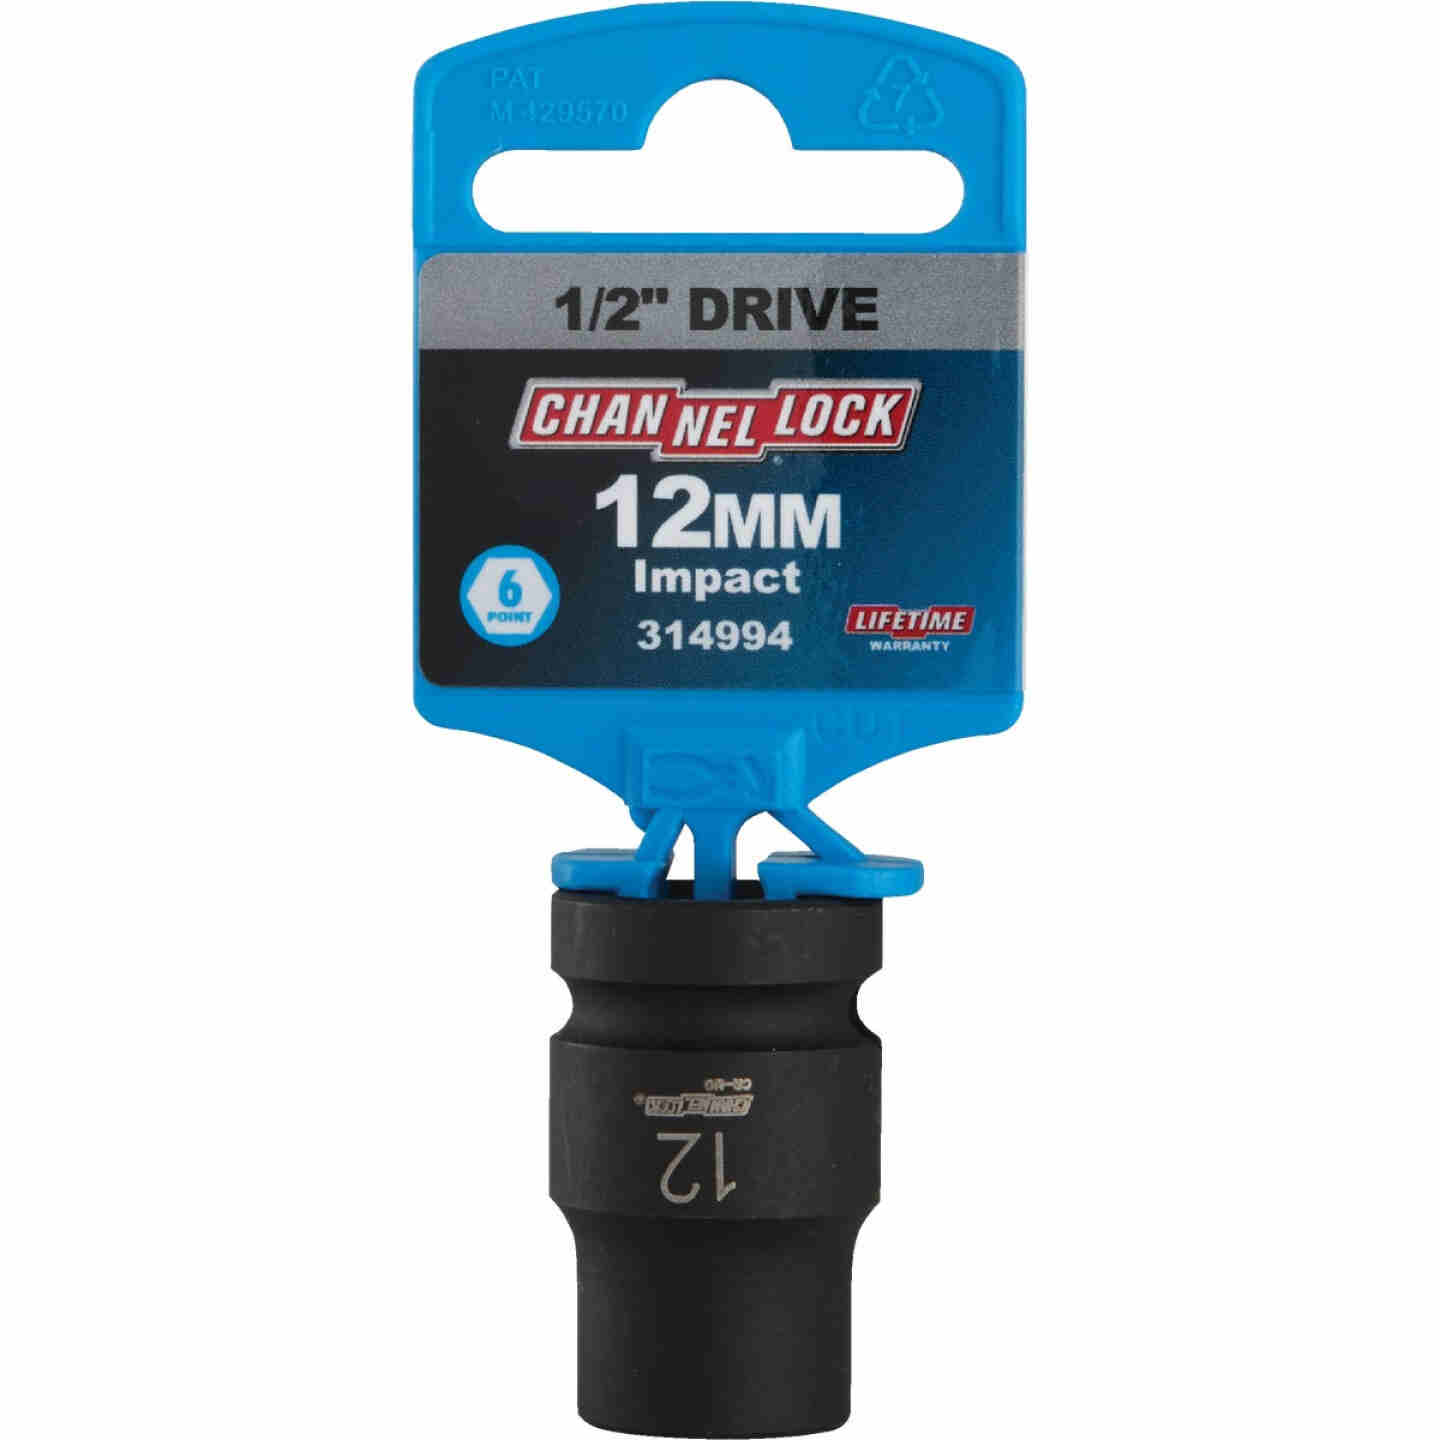 Channellock 1/2 In. Drive 12 mm 6-Point Shallow Metric Impact Socket Image 2